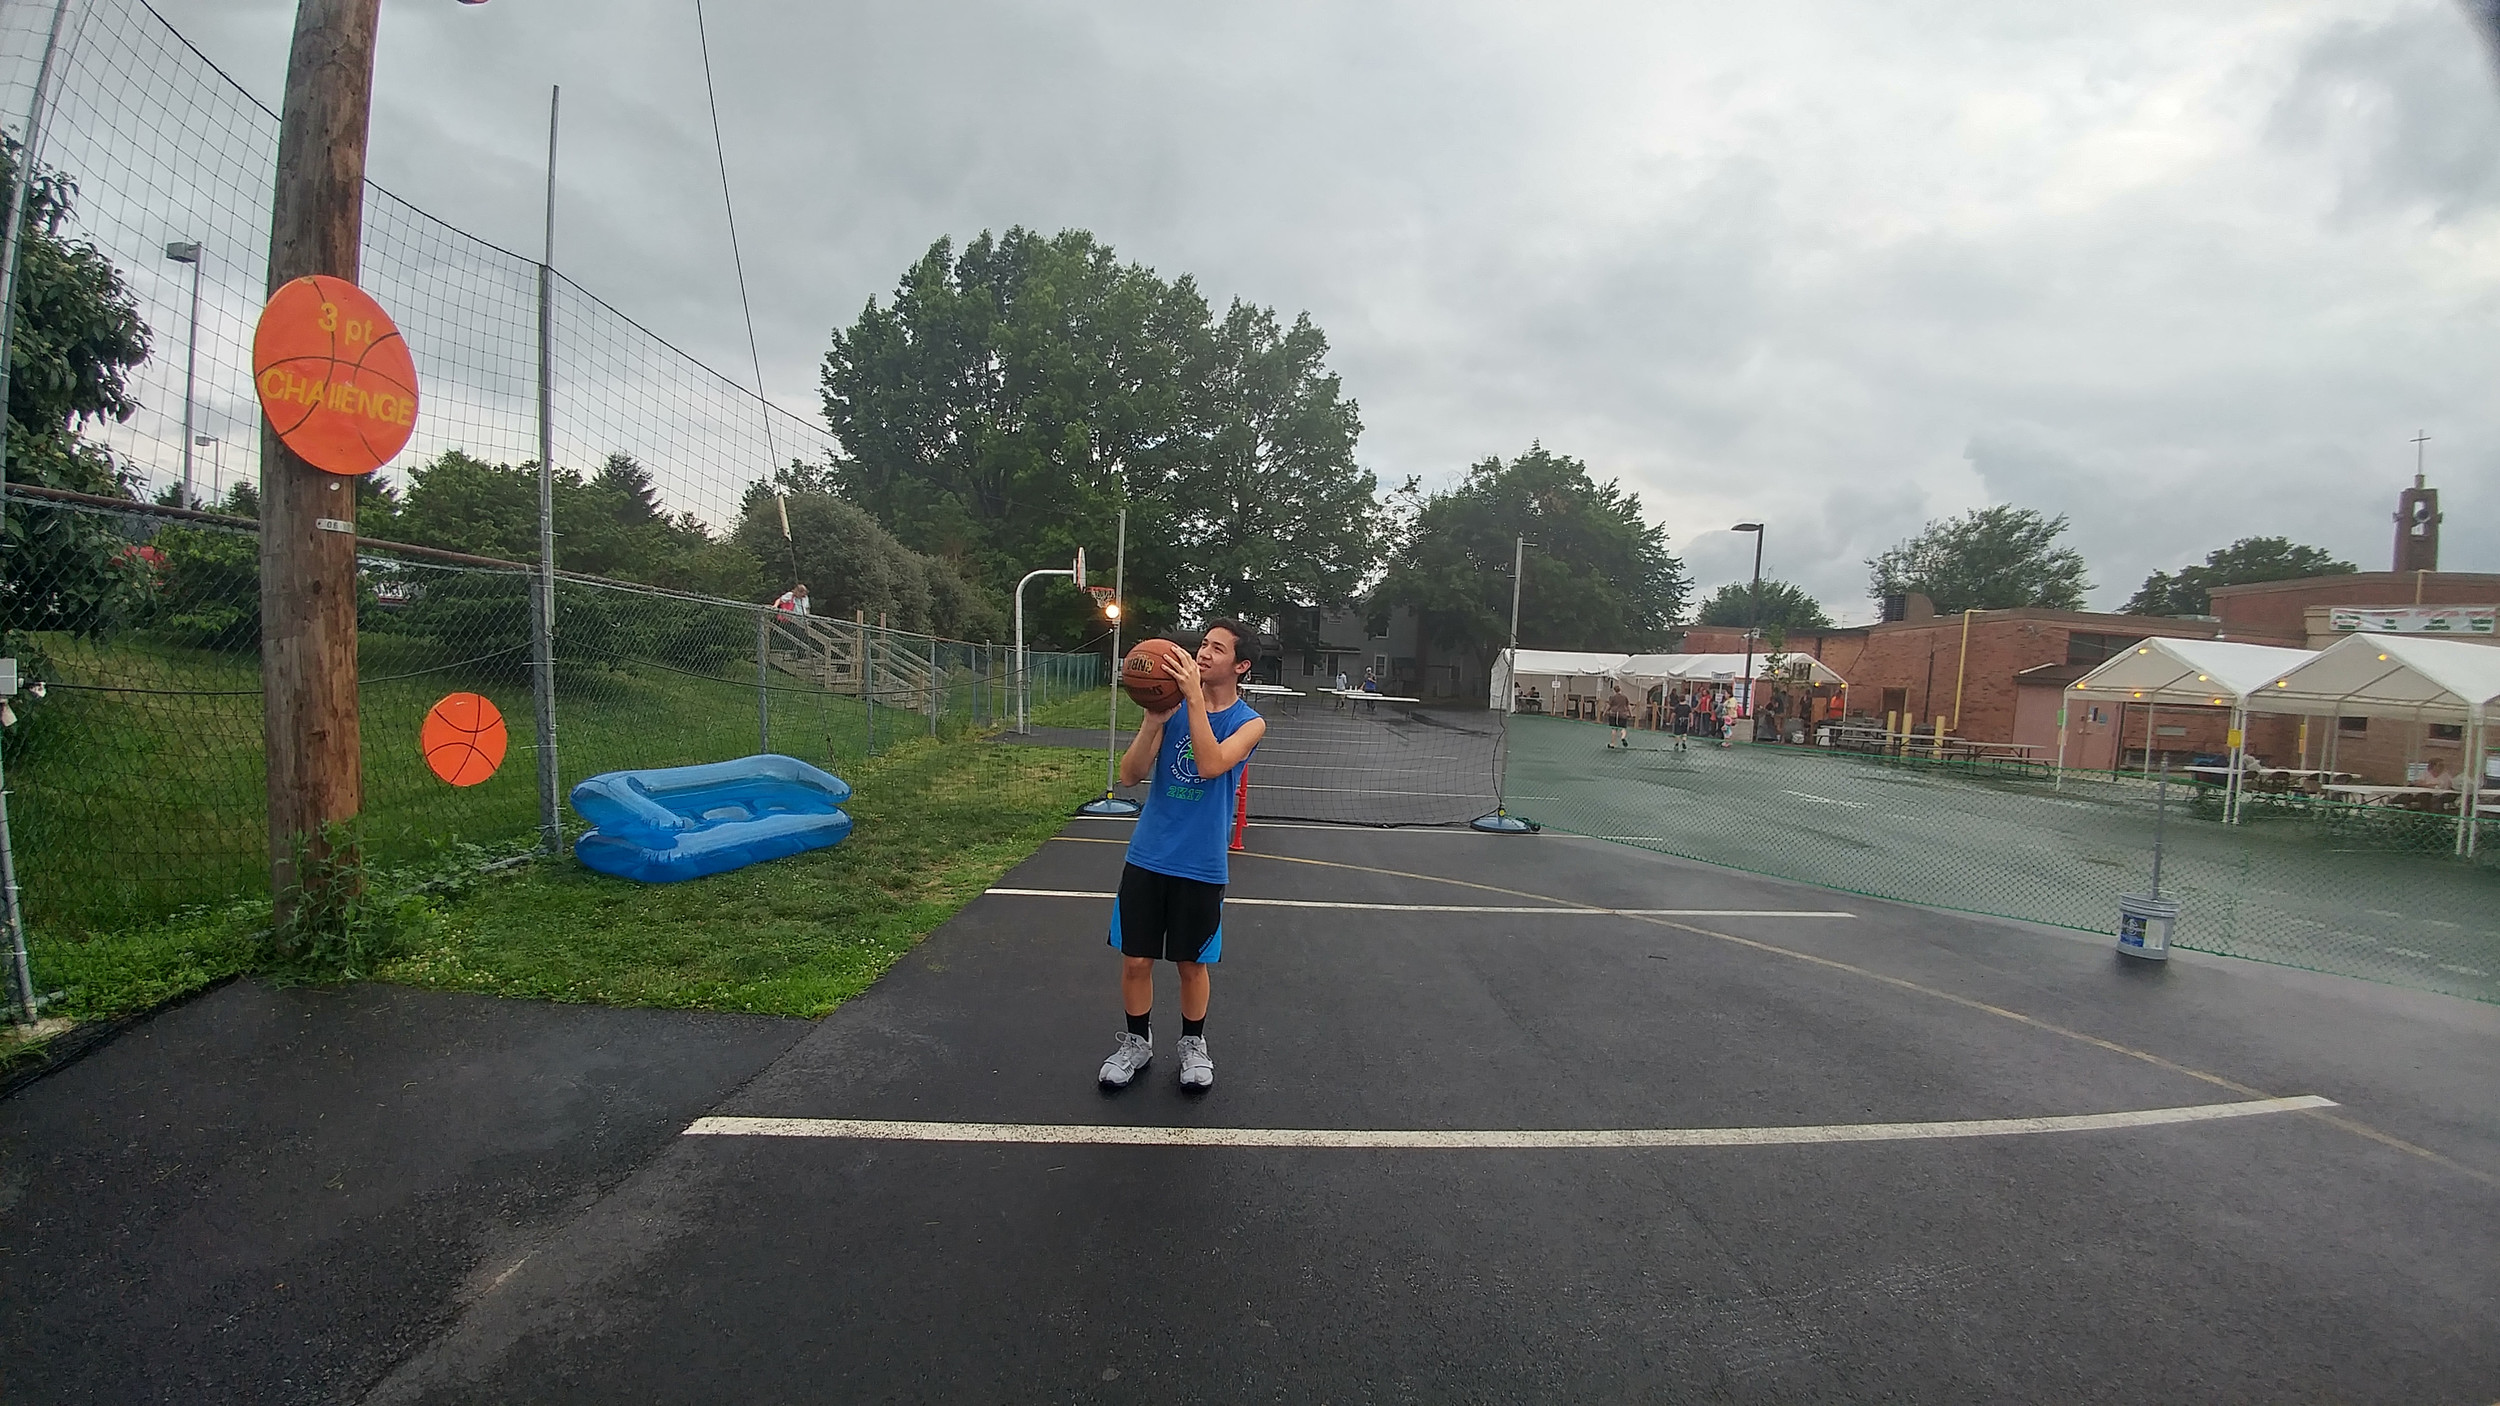 Nick Bettendorf attempts a shot at the three-point challenge game at the Seven Sorrows Festival.